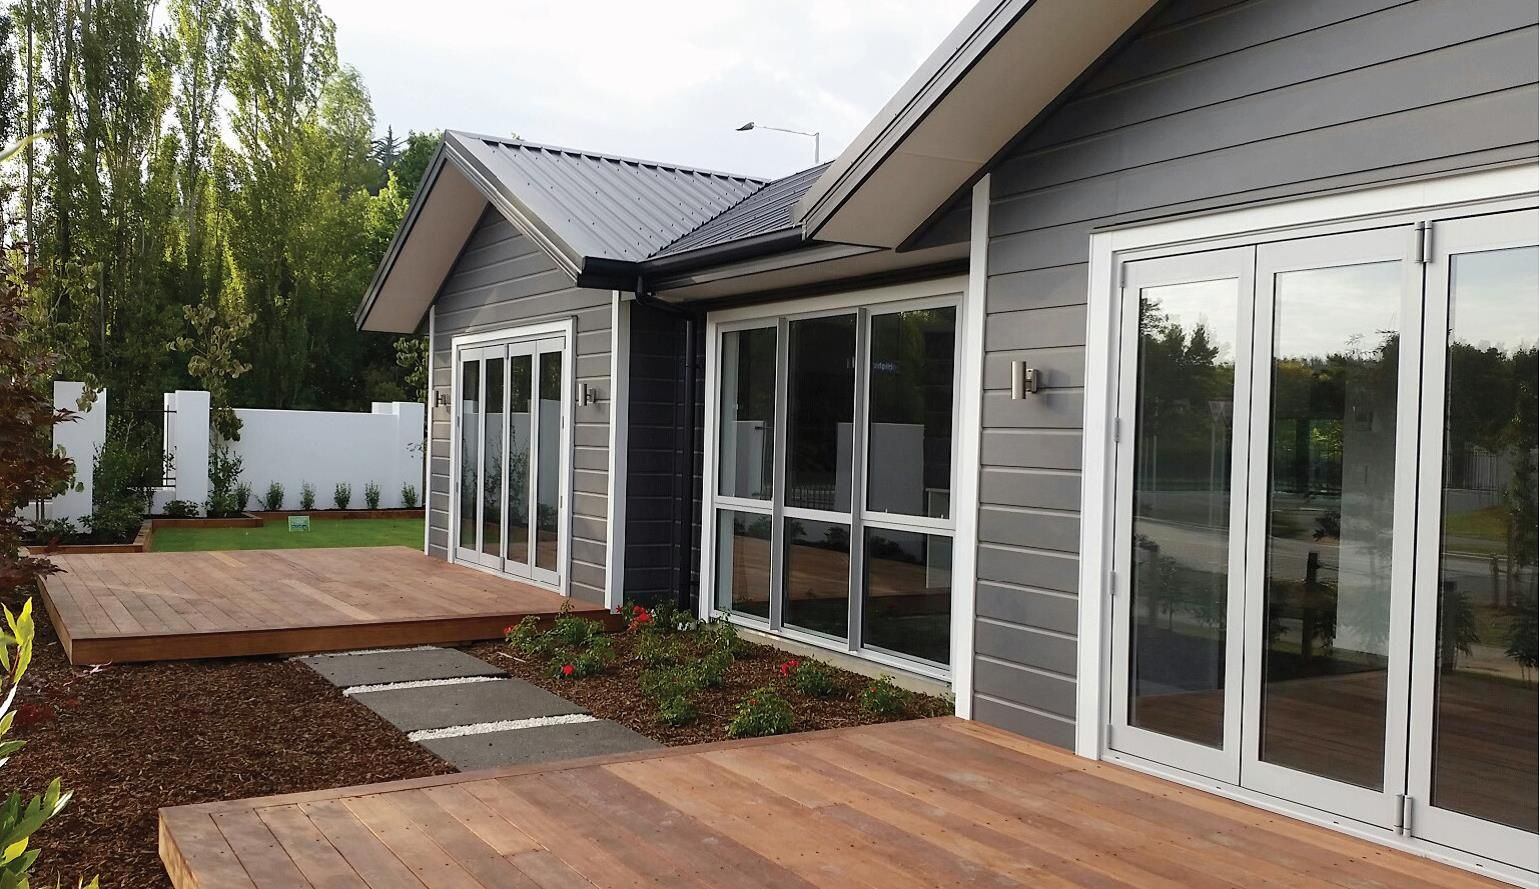 Modern twist on the classic weatherboard james hardie for James hardie